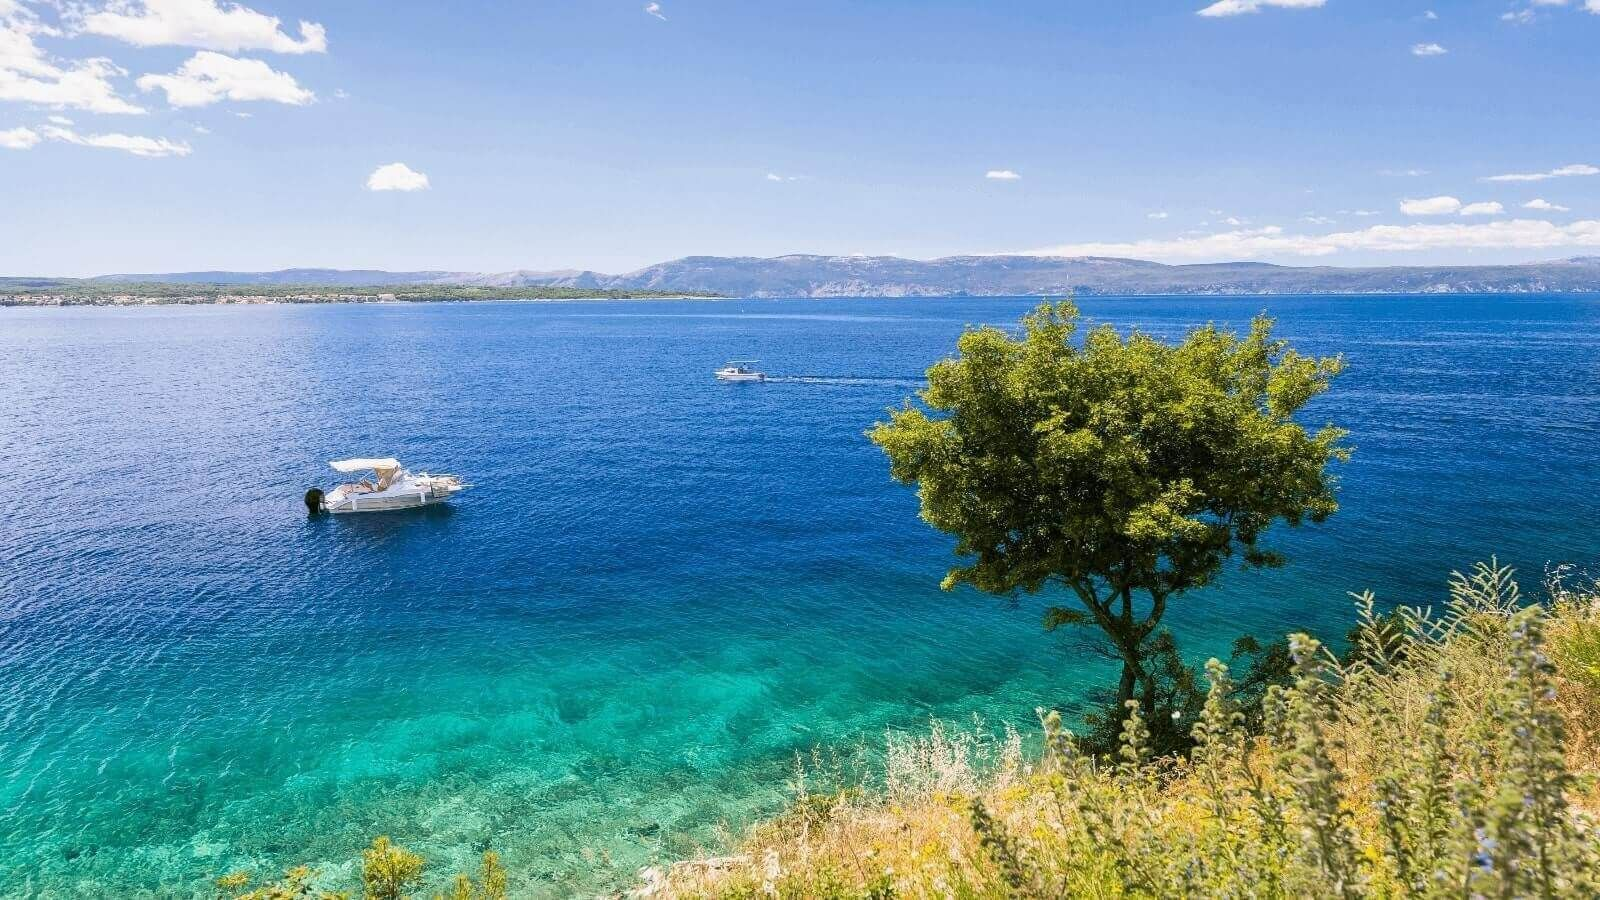 3 Different Trip Options You Might Consider For Your Trip to Krk Island